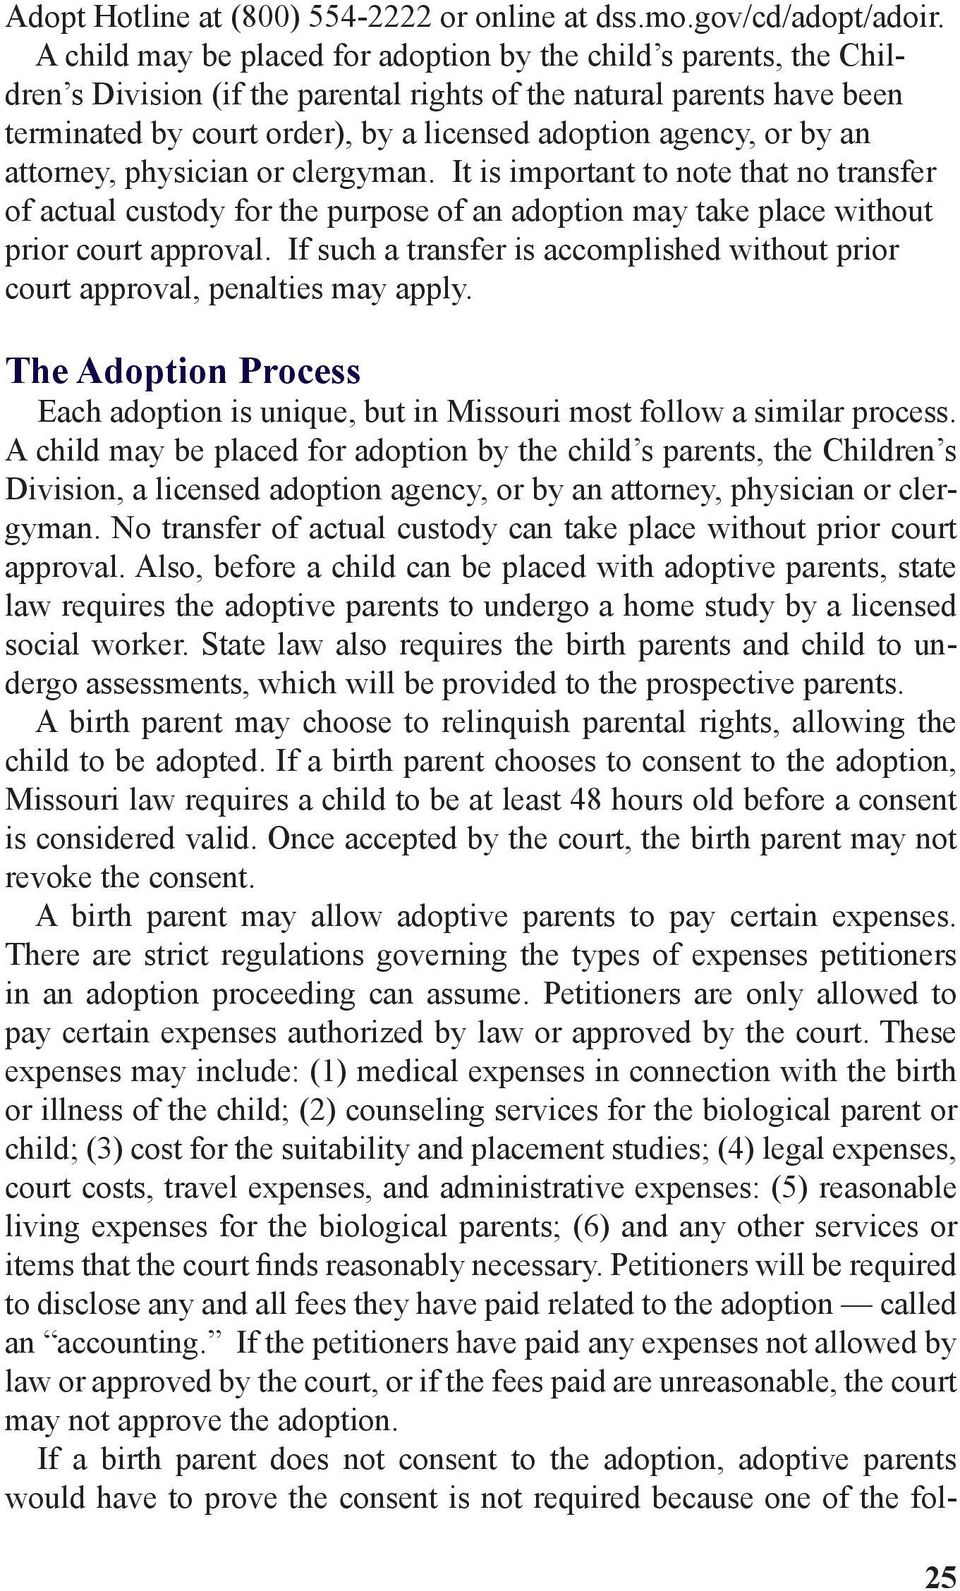 or by an attorney, physician or clergyman. It is important to note that no transfer of actual custody for the purpose of an adoption may take place without prior court approval.